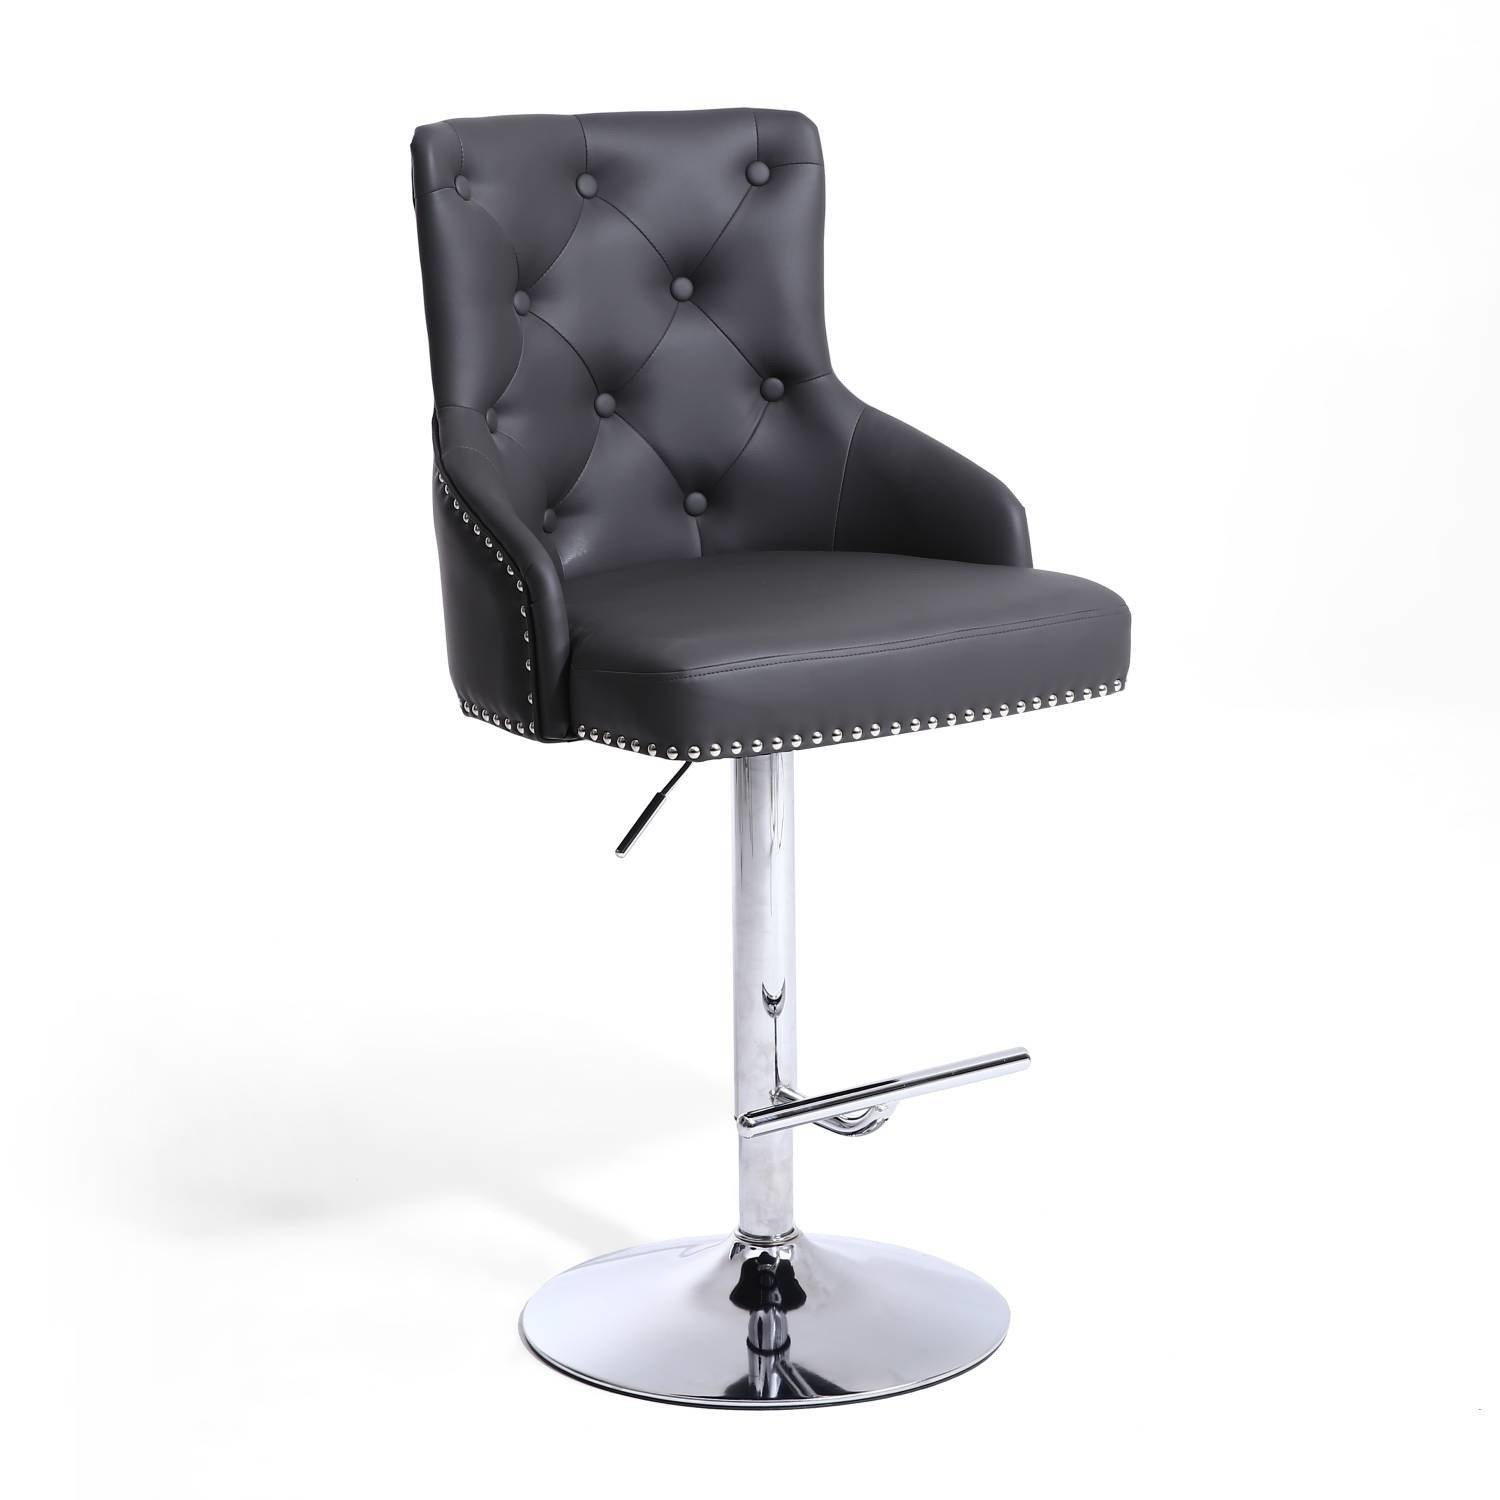 Picture of: Adjustable Bar Stool In Grey Faux Leather With Silver Studs Rocco Furniture123